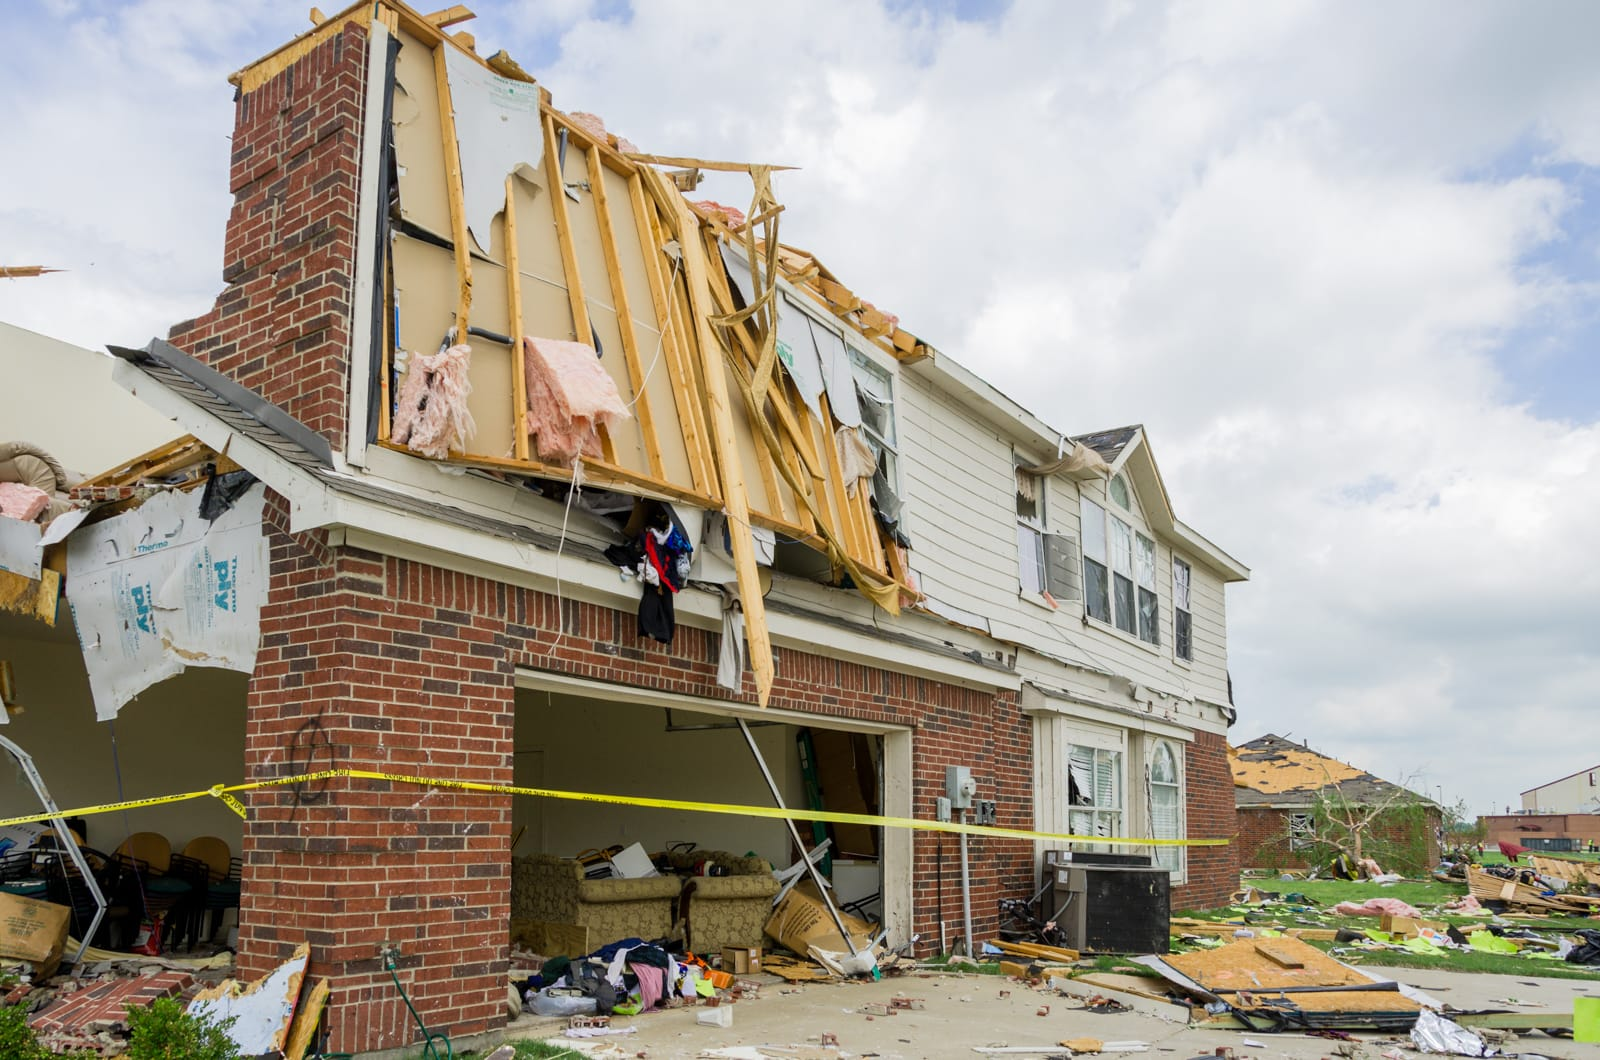 A house destroyed by a tornado